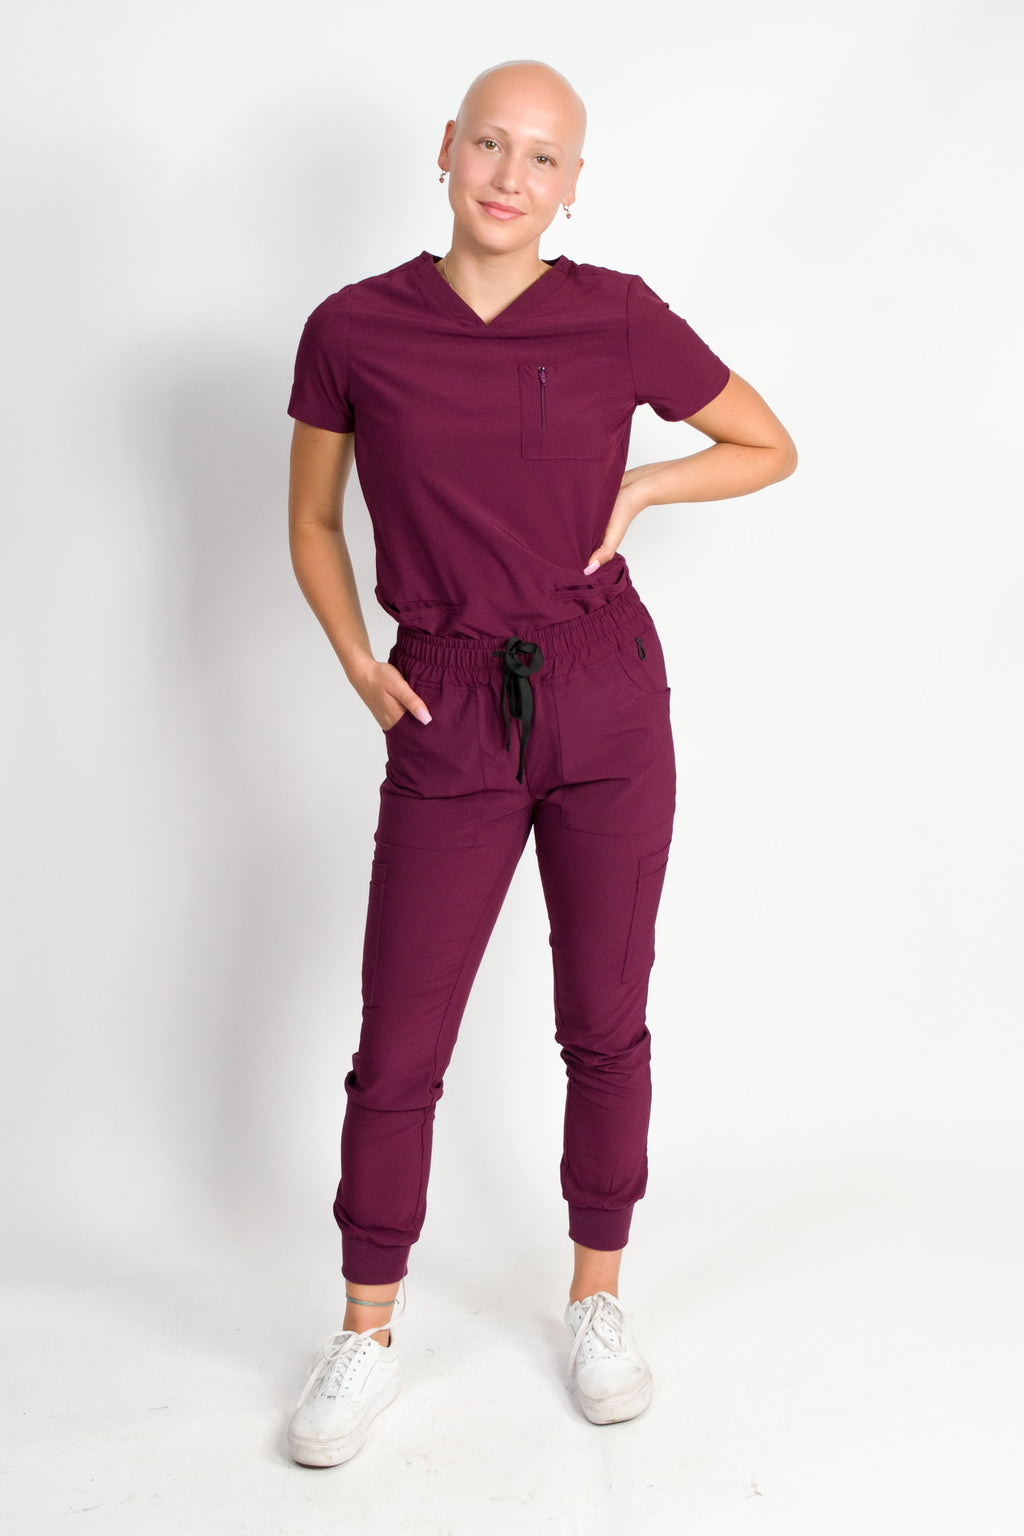 Fleur | Women's Mitered Neck Zip Chest Pocket Top Knit Rib Cuffs Jogger Pants Set | Burgundy